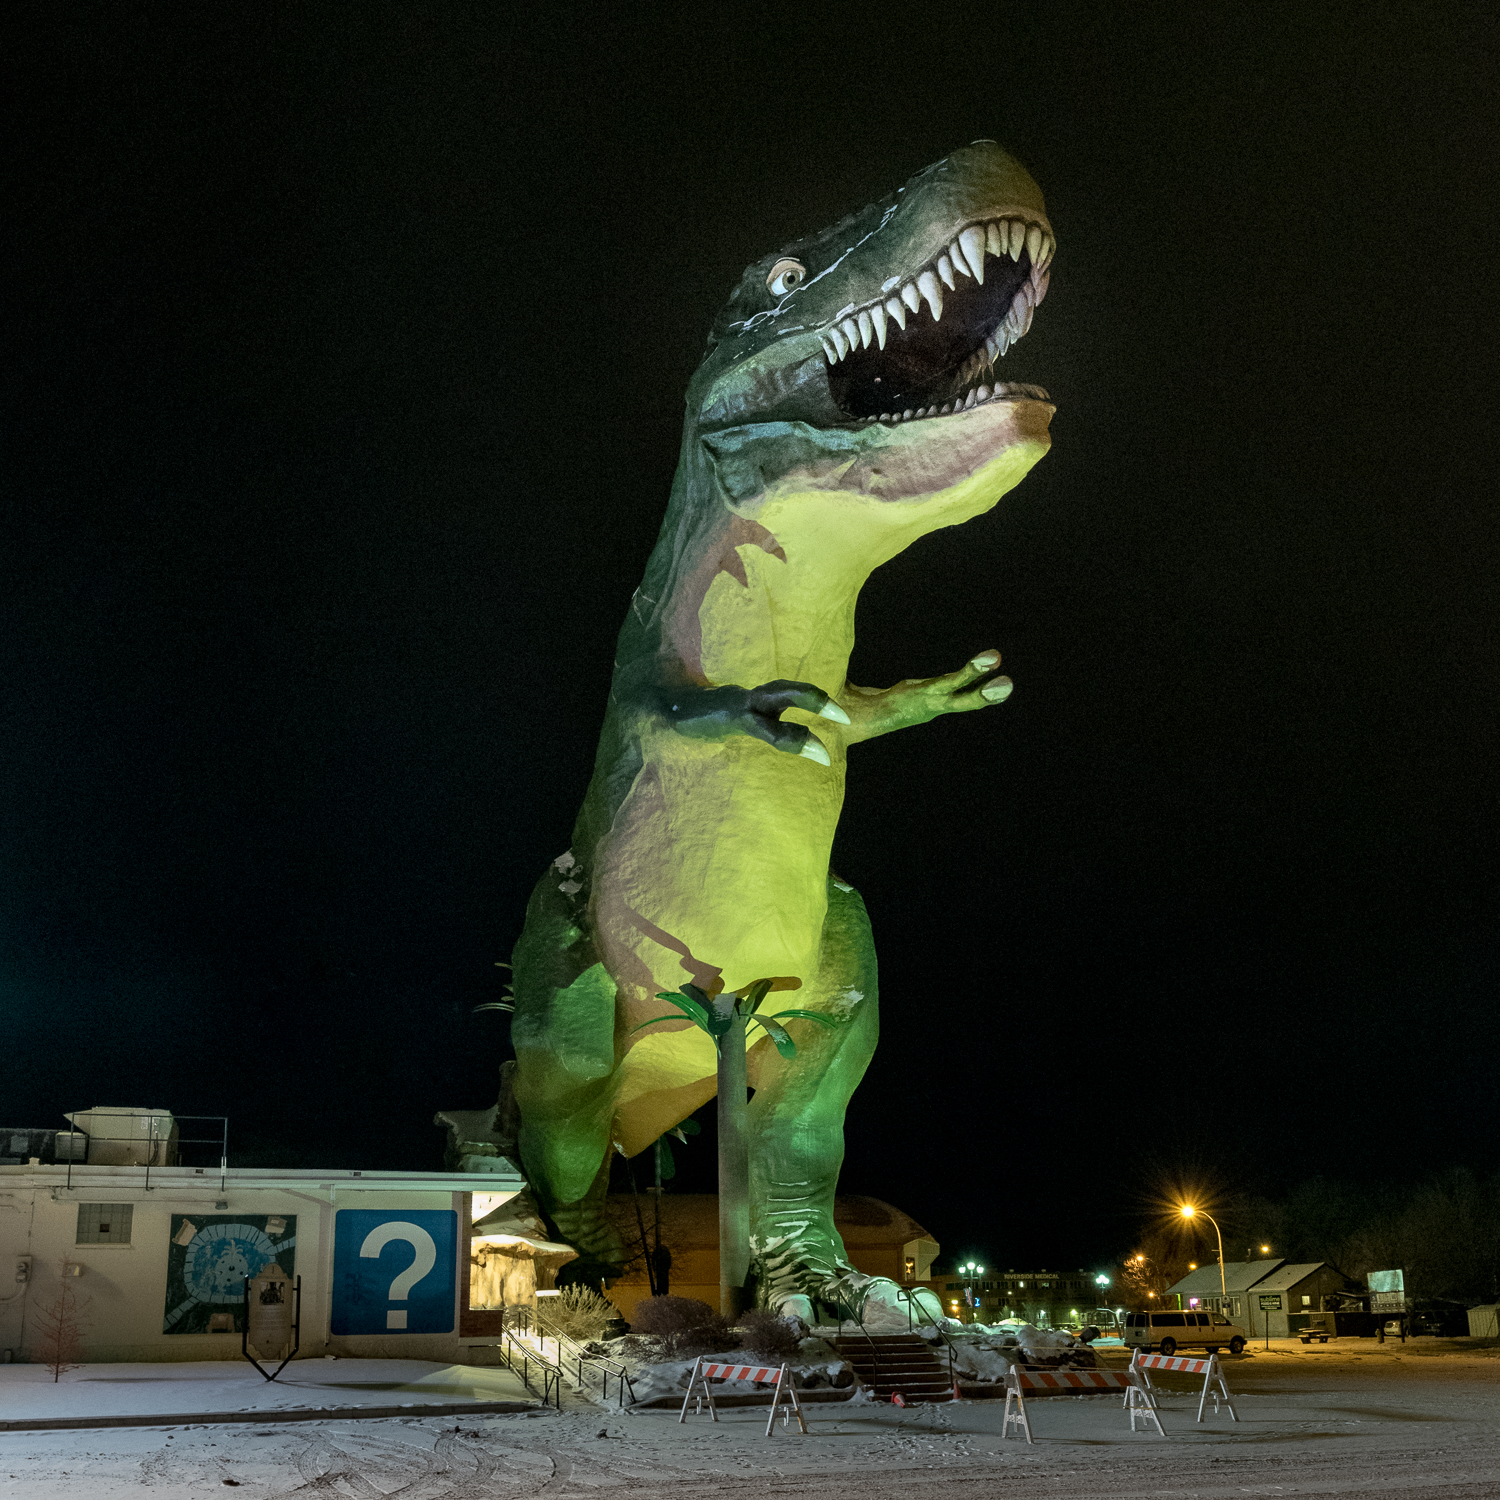 Who could resist photographing the big T-Rex in Drumheller, even on a chilly evening?